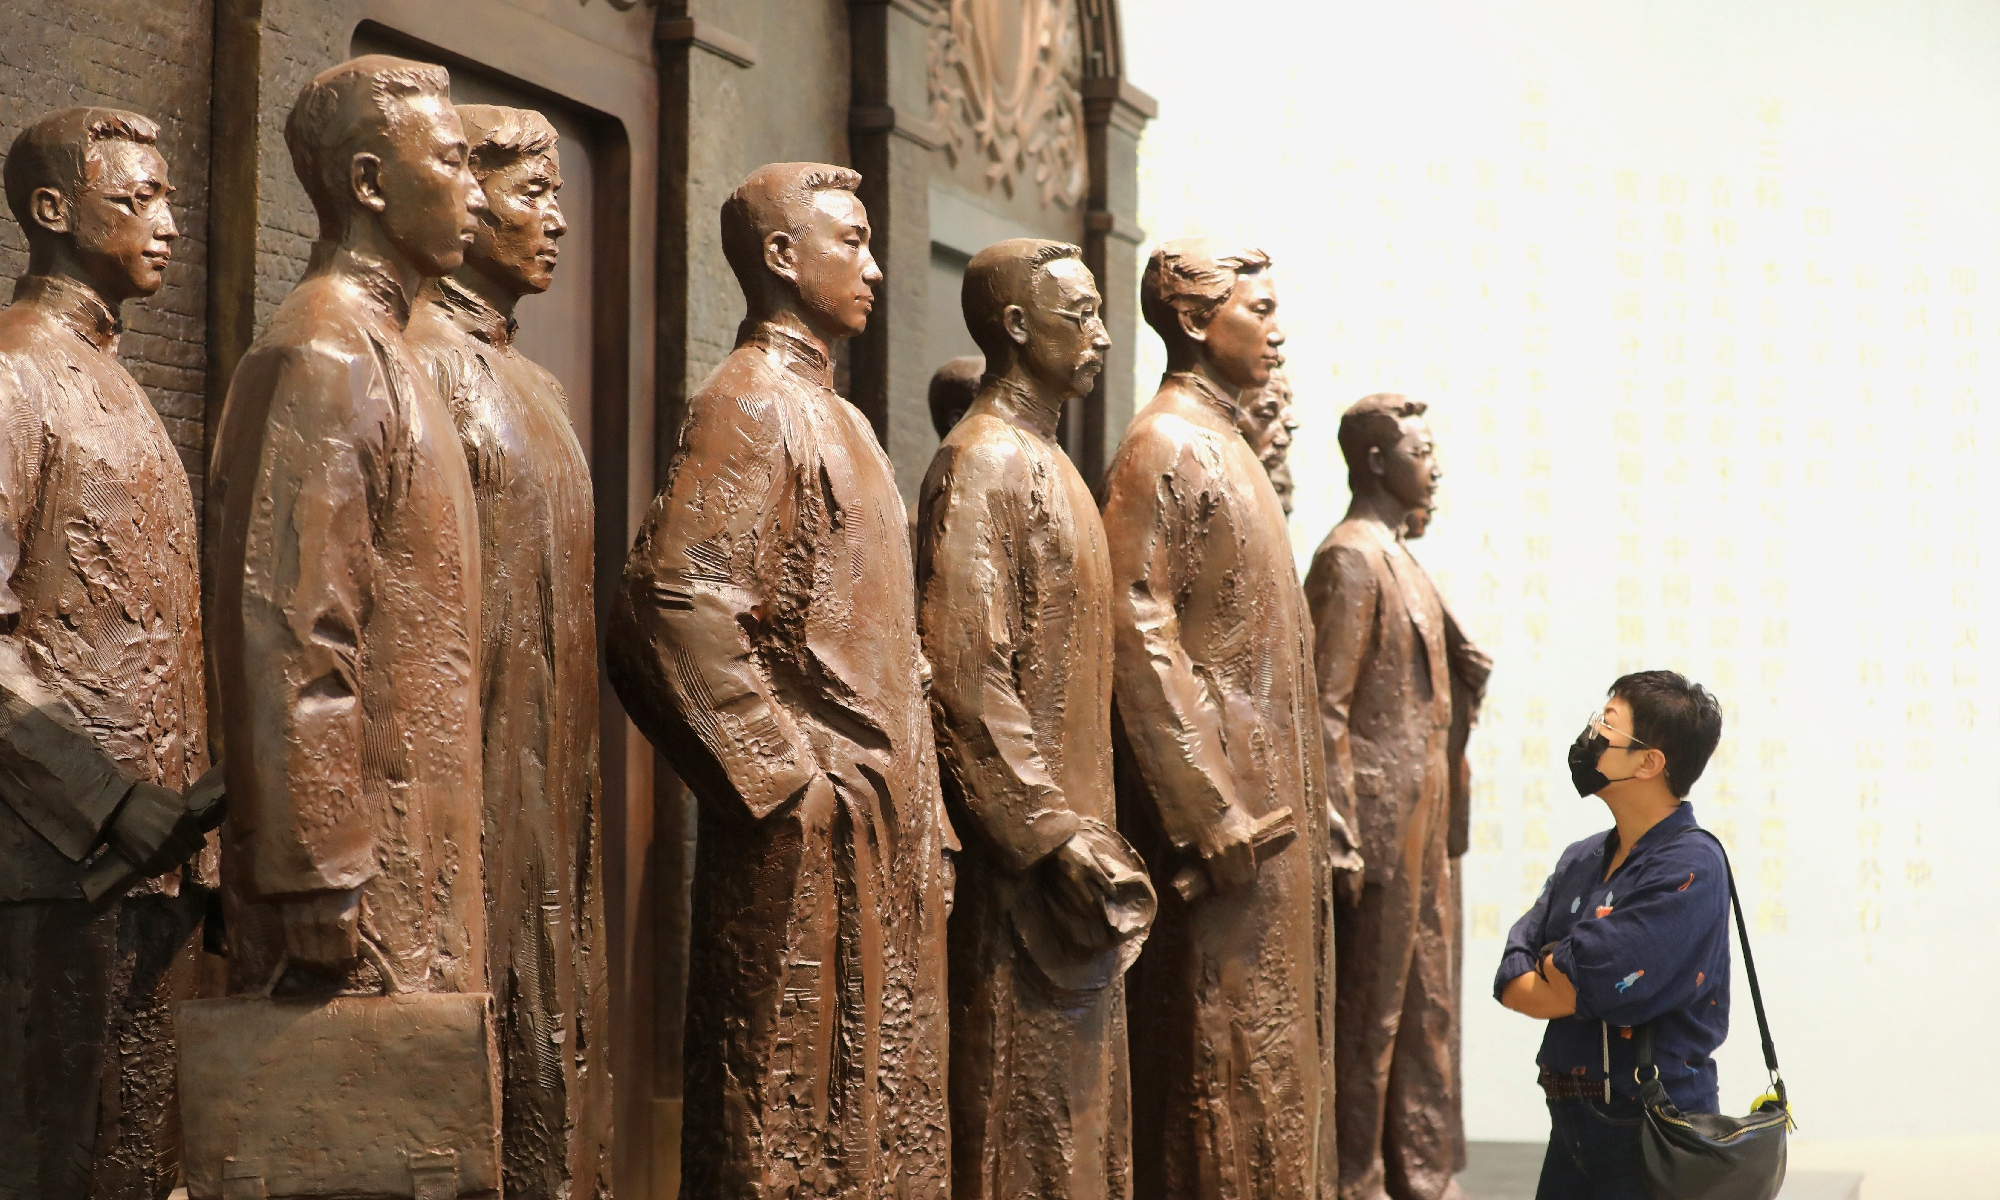 A visitor looks at statues of earlier generations of revolutionaries at the site of the First National Congress of the CPC in Shanghai on Thursday when restoration at the site finished and it is reopened to the public as a museum. Photo: Yang Hui/GT